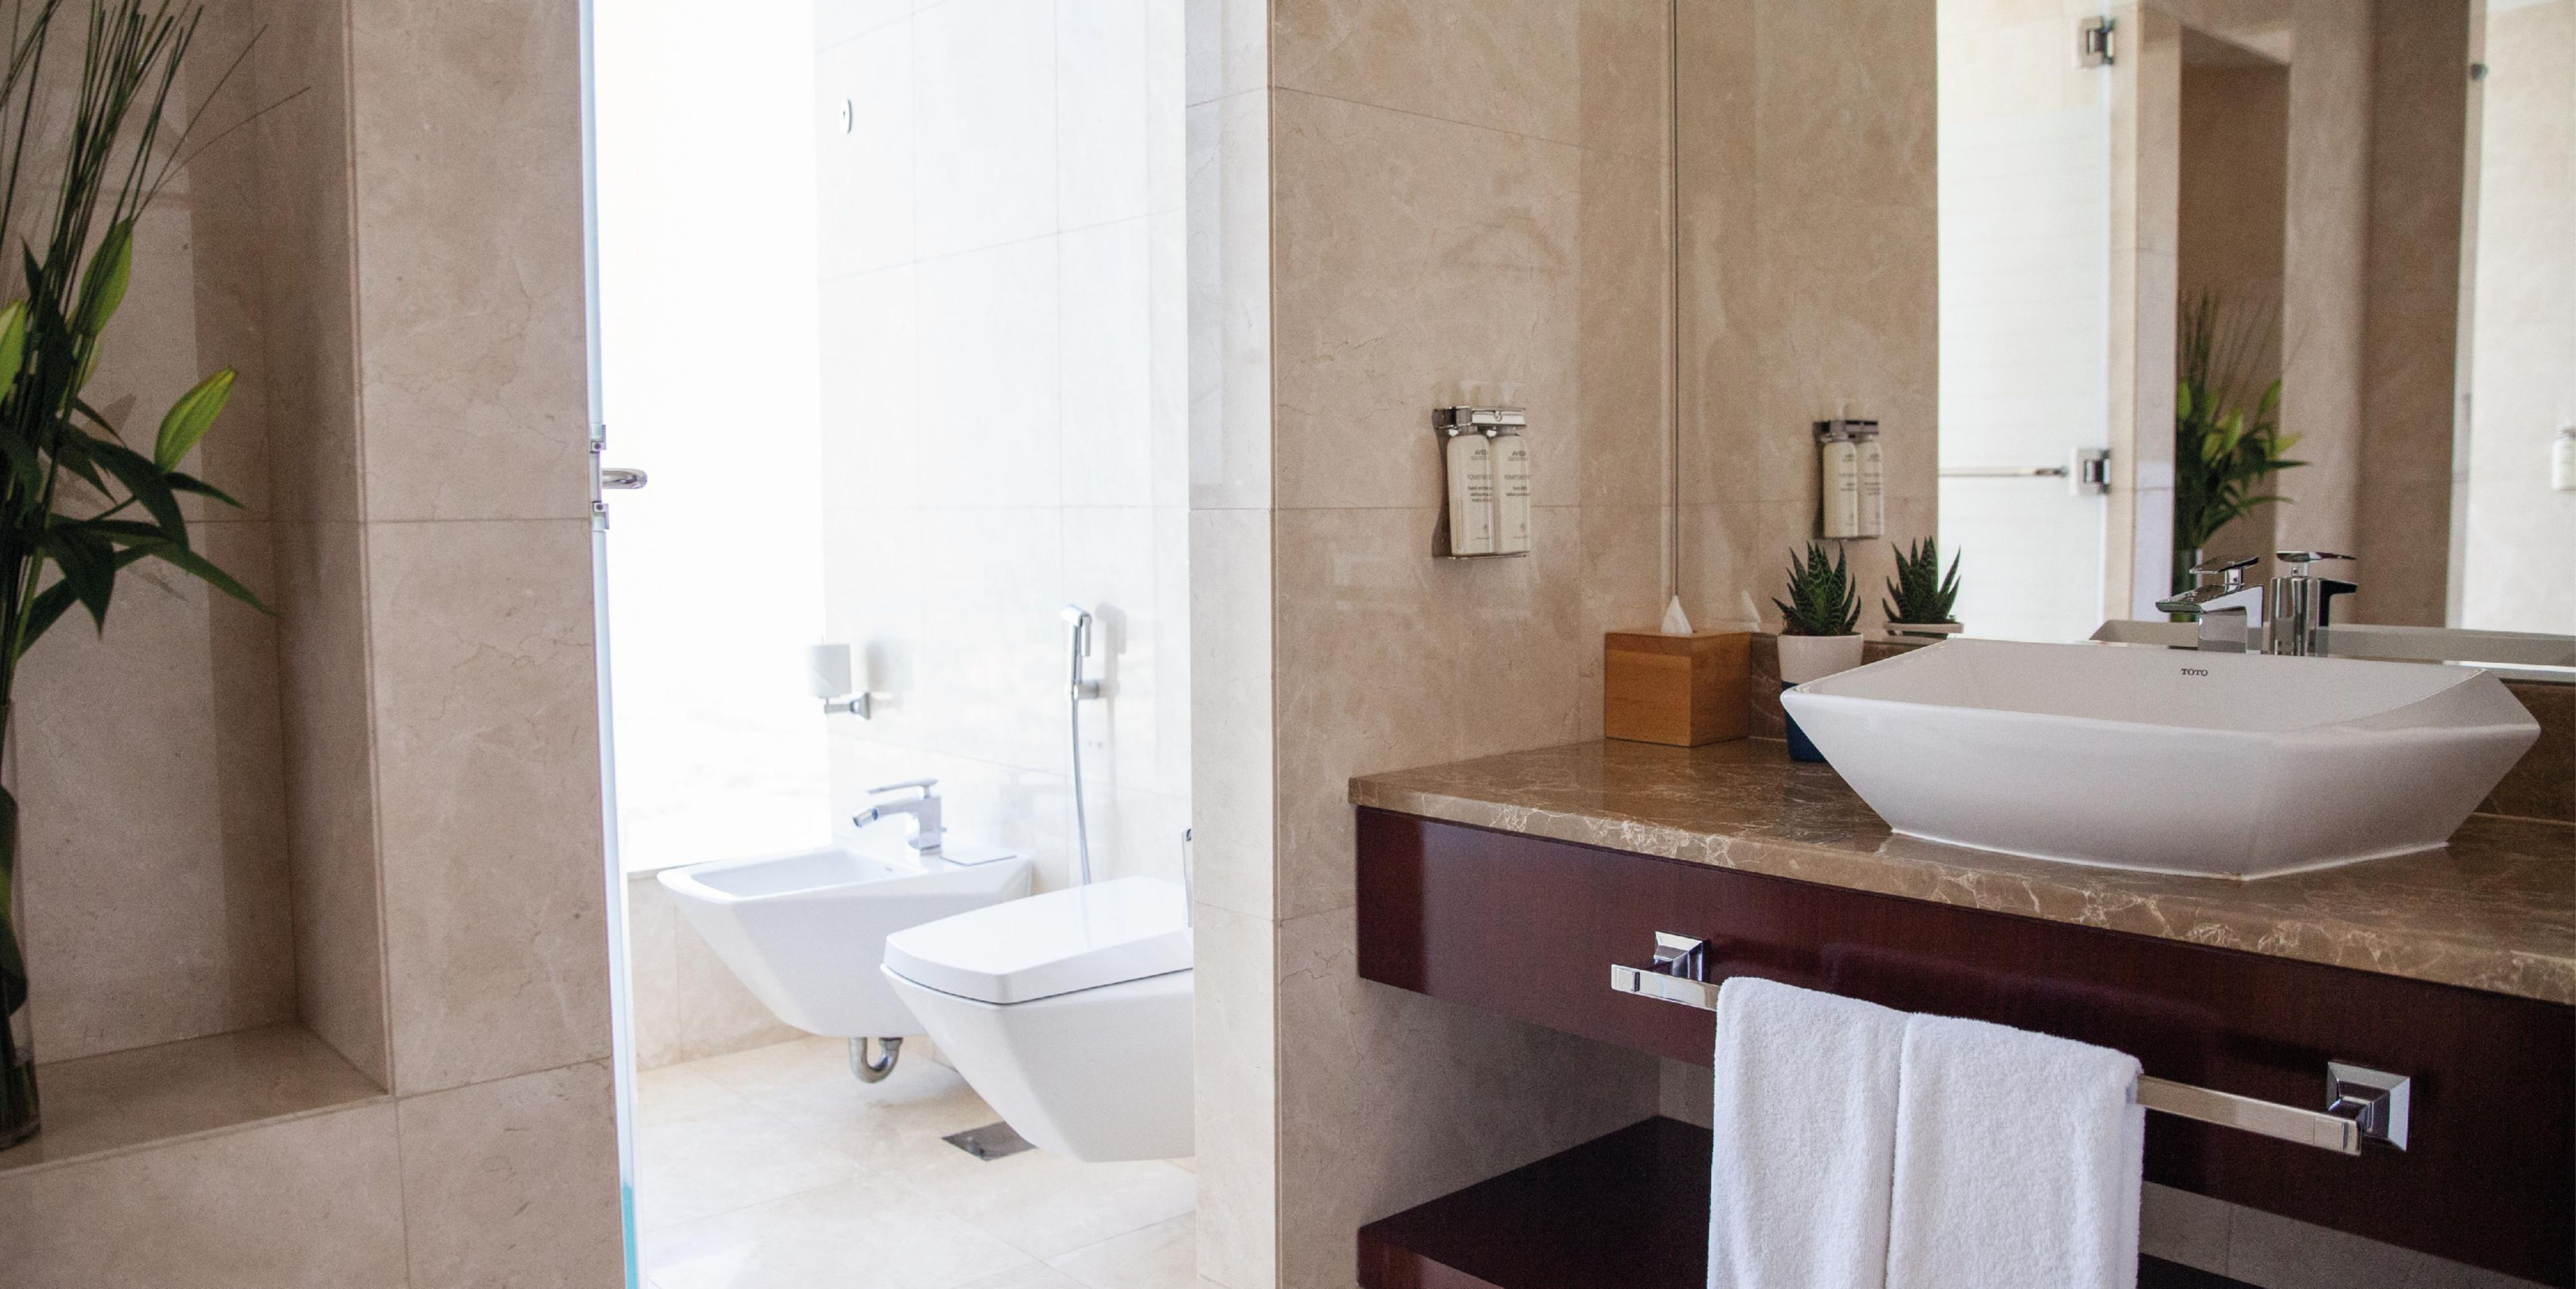 Executive Suite Scenic bathroom, with views of Sheikh Zayed Road